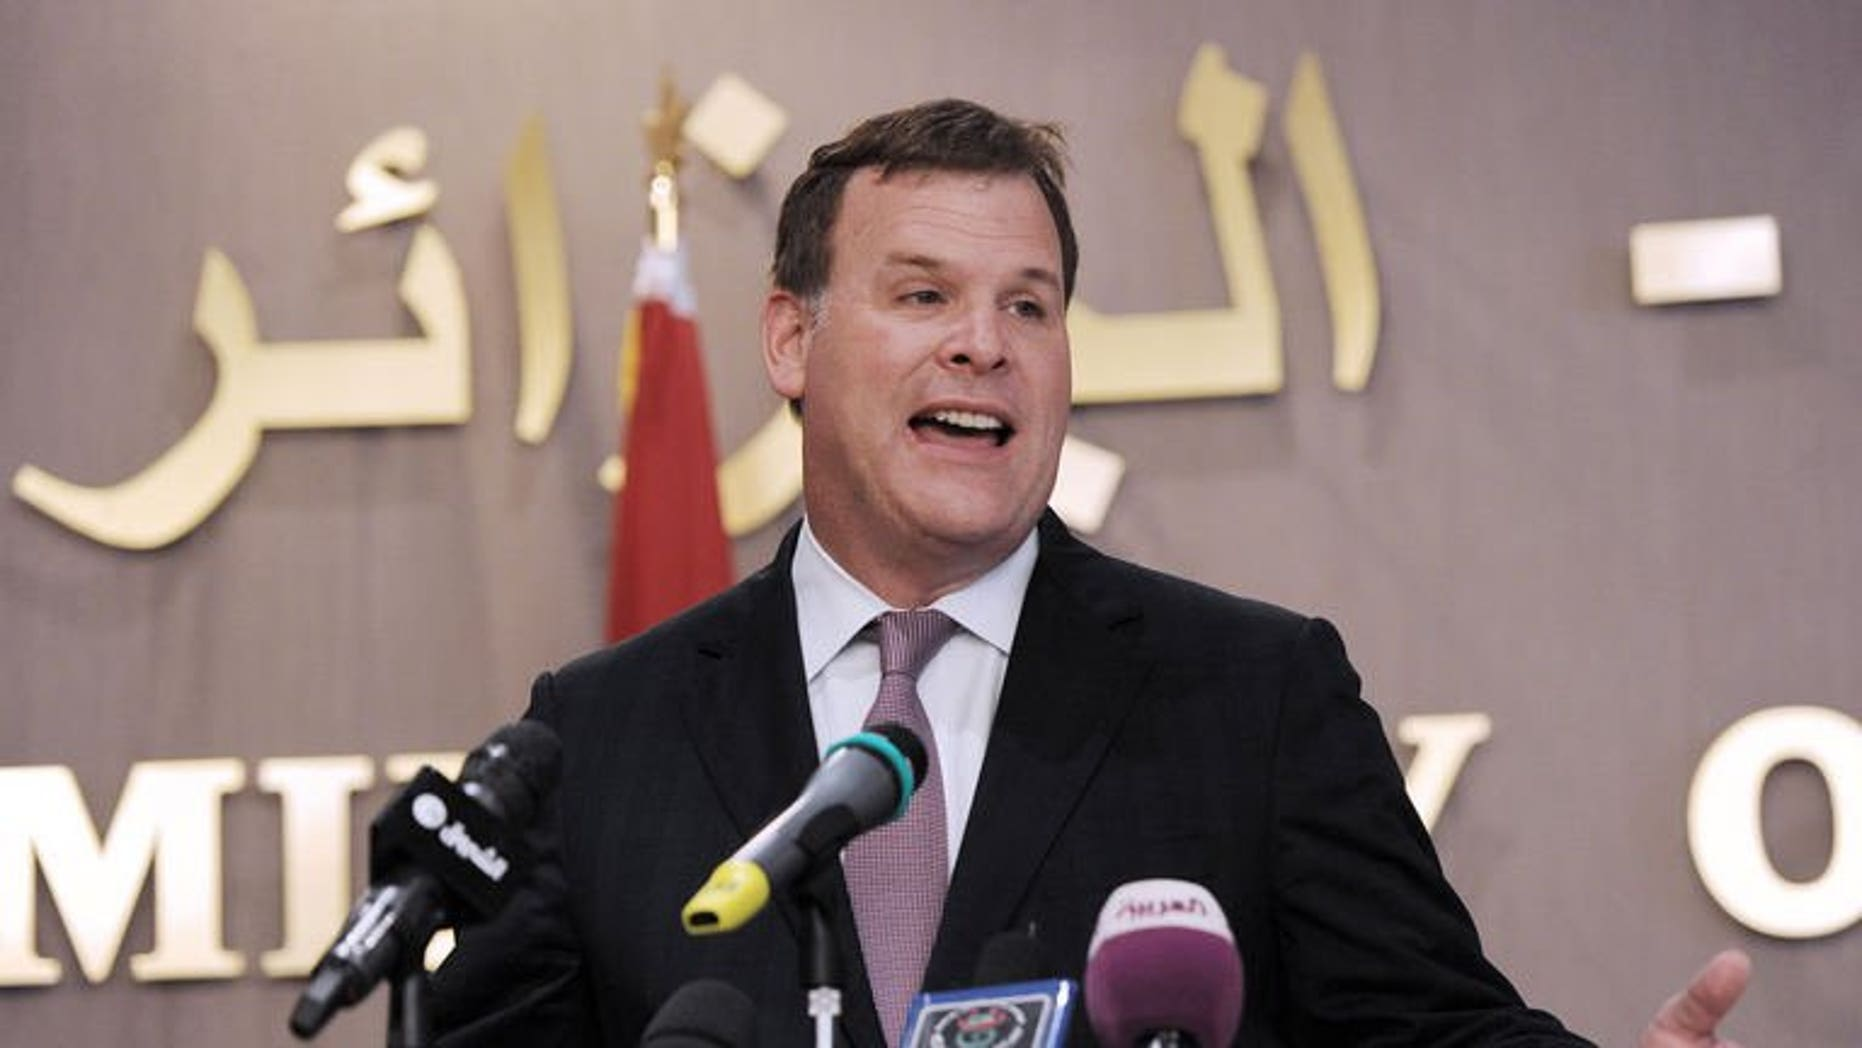 Canadian Foreign Affairs Minister John Baird attends a press conference in Algiers, on September 15, 2013.